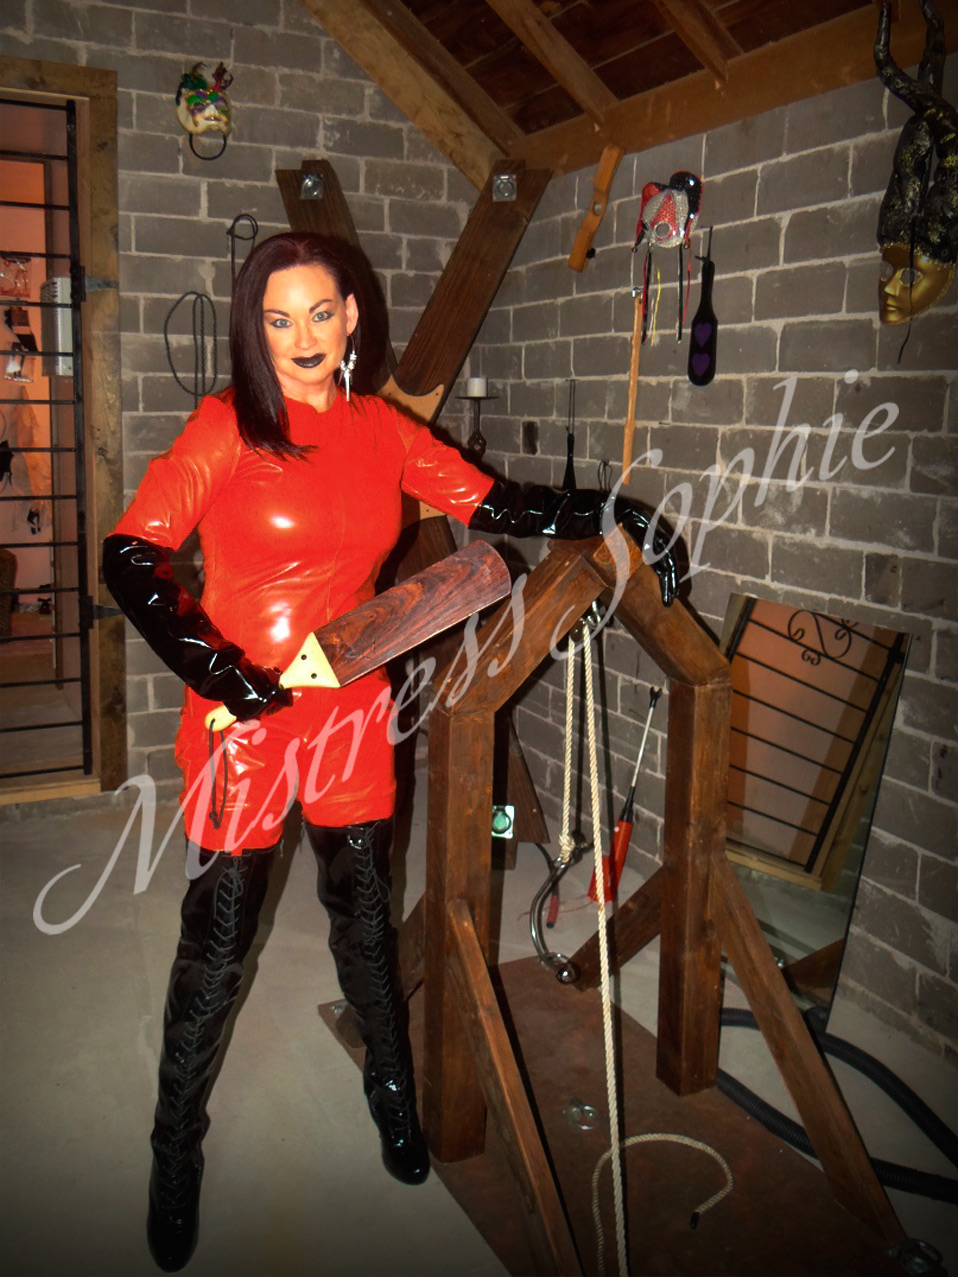 Gallery | About Mistress SophieAbout Mistress Sophie